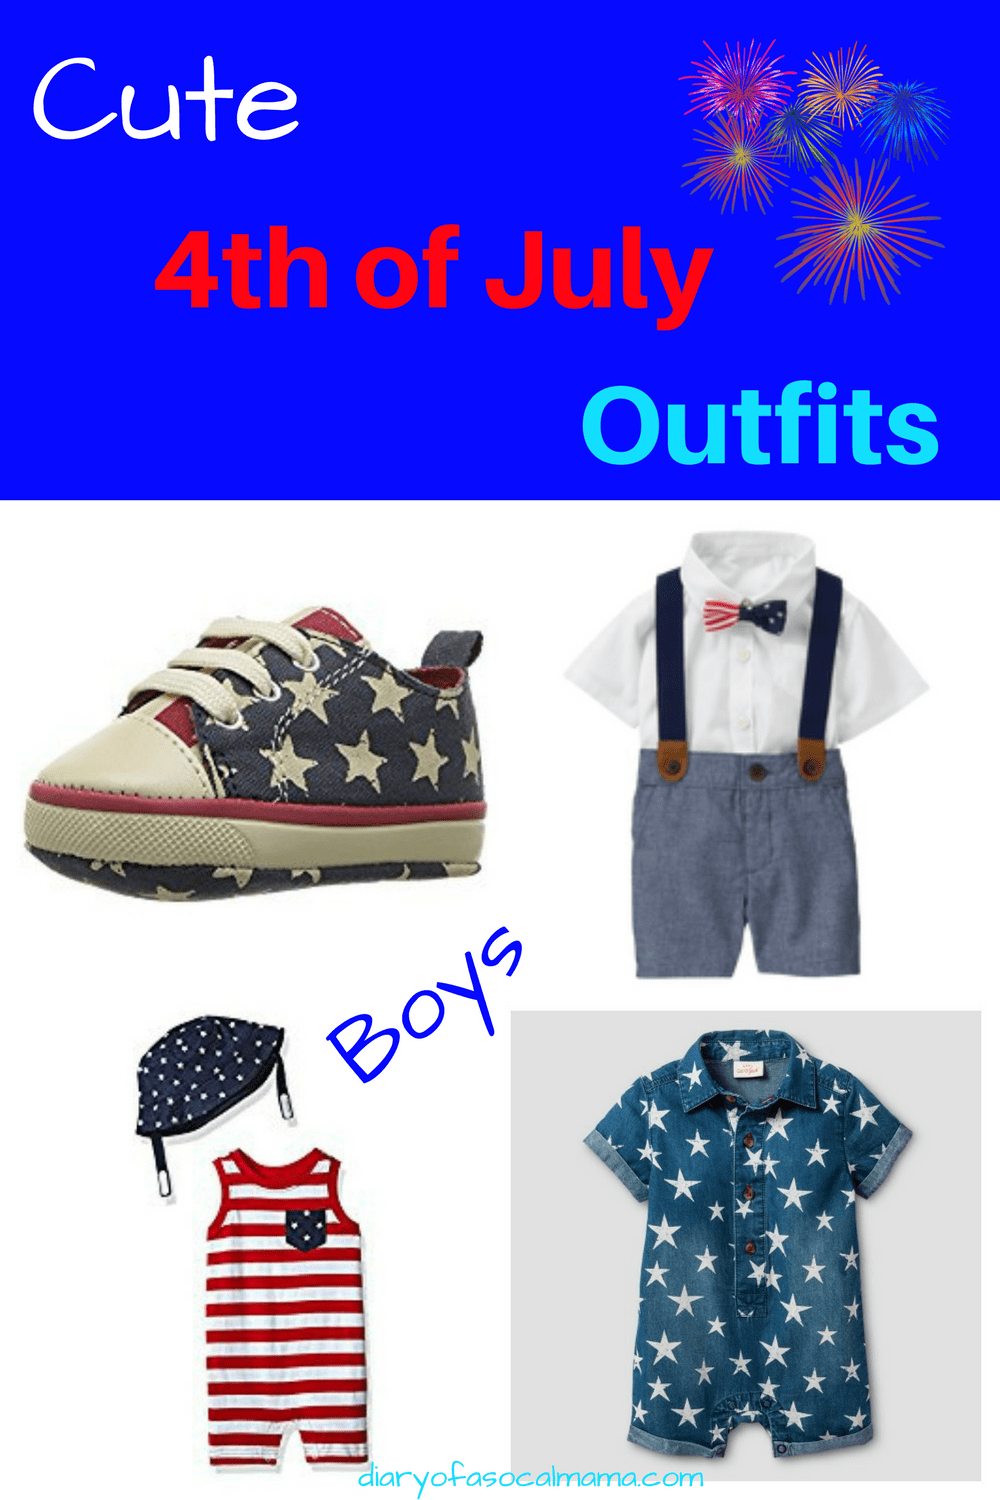 Cute 4th of July outfits for boys - Diary of a SoCal mama